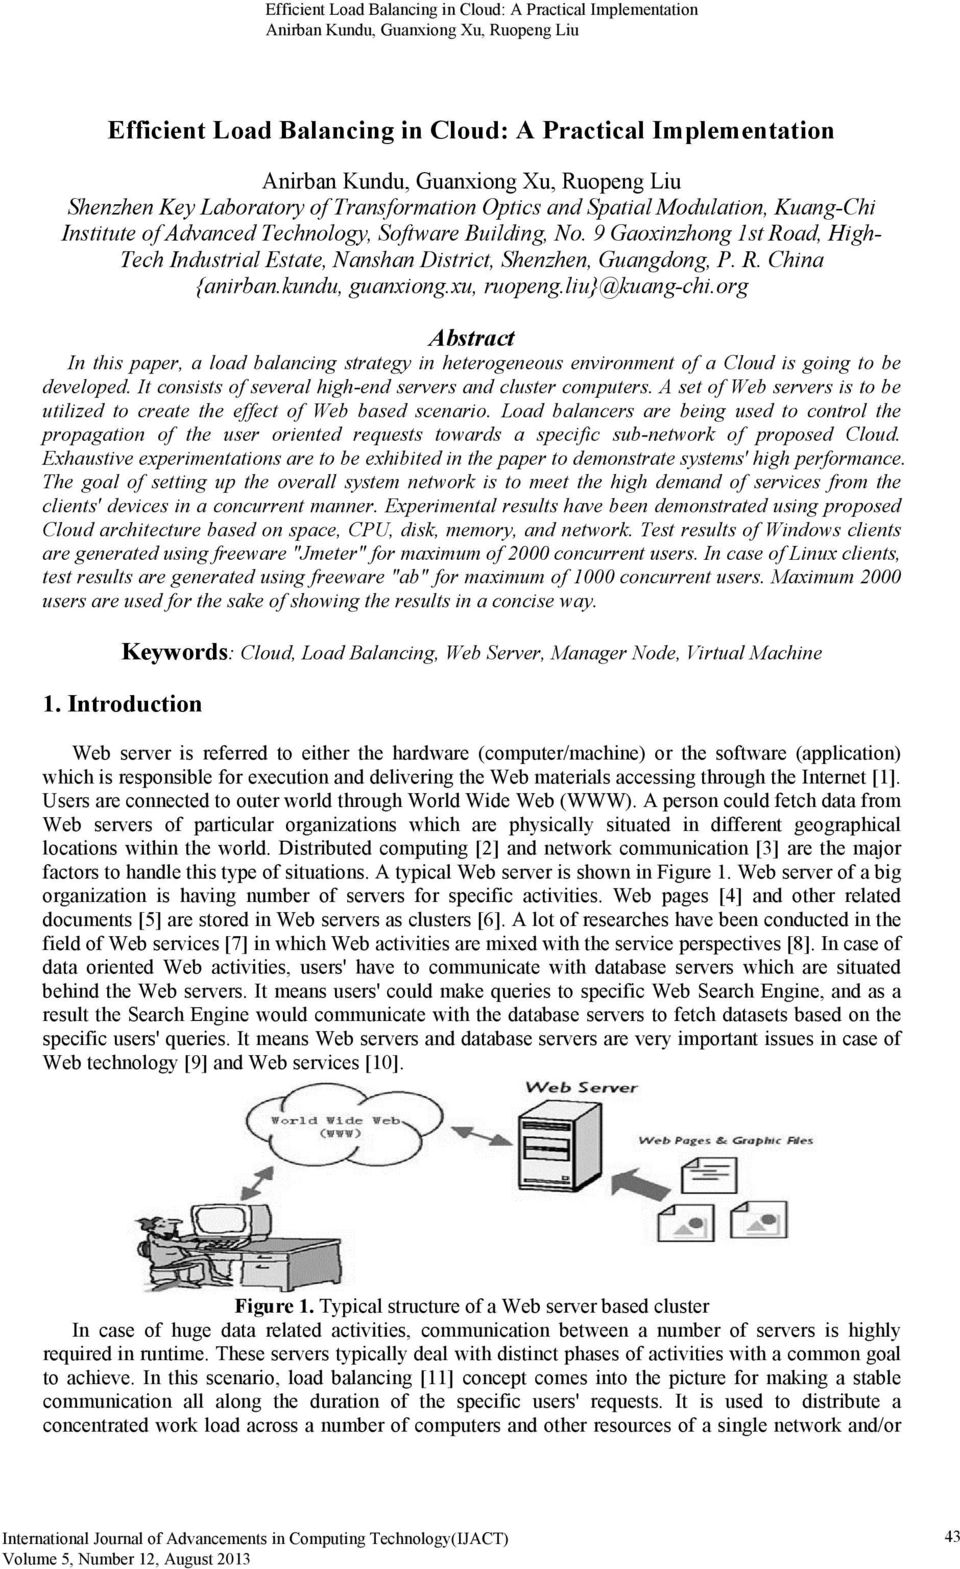 org Abstract In this paper, a load balancing strategy in heterogeneous environment of a Cloud is going to be developed. It consists of several high-end servers and cluster computers.